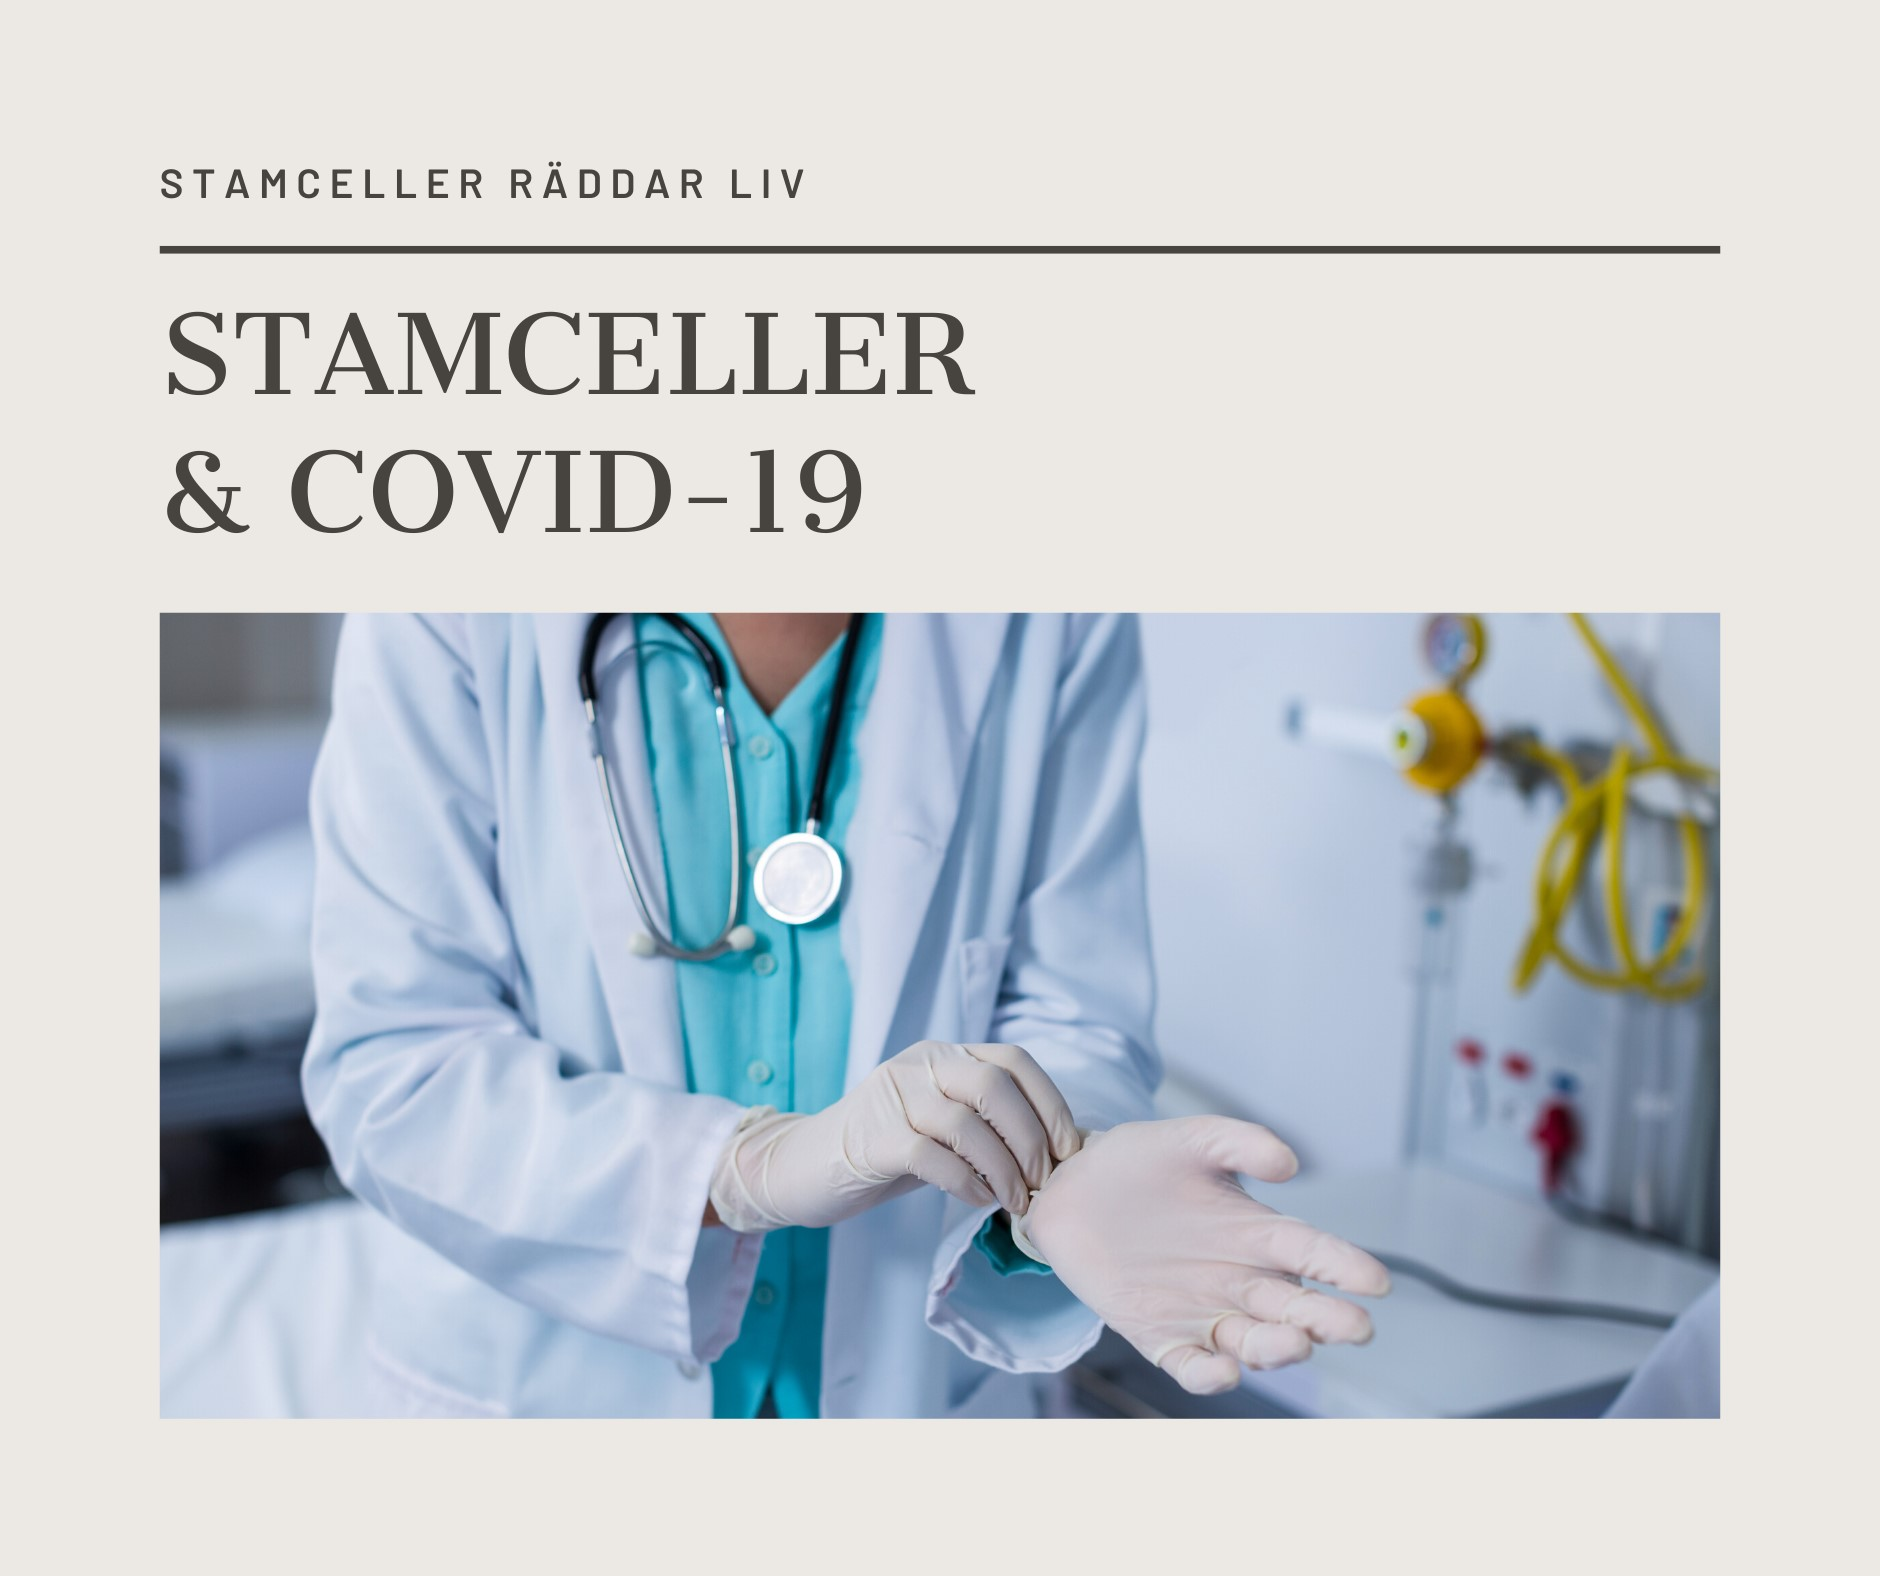 COVID-19 patienter behandlas med stamceller